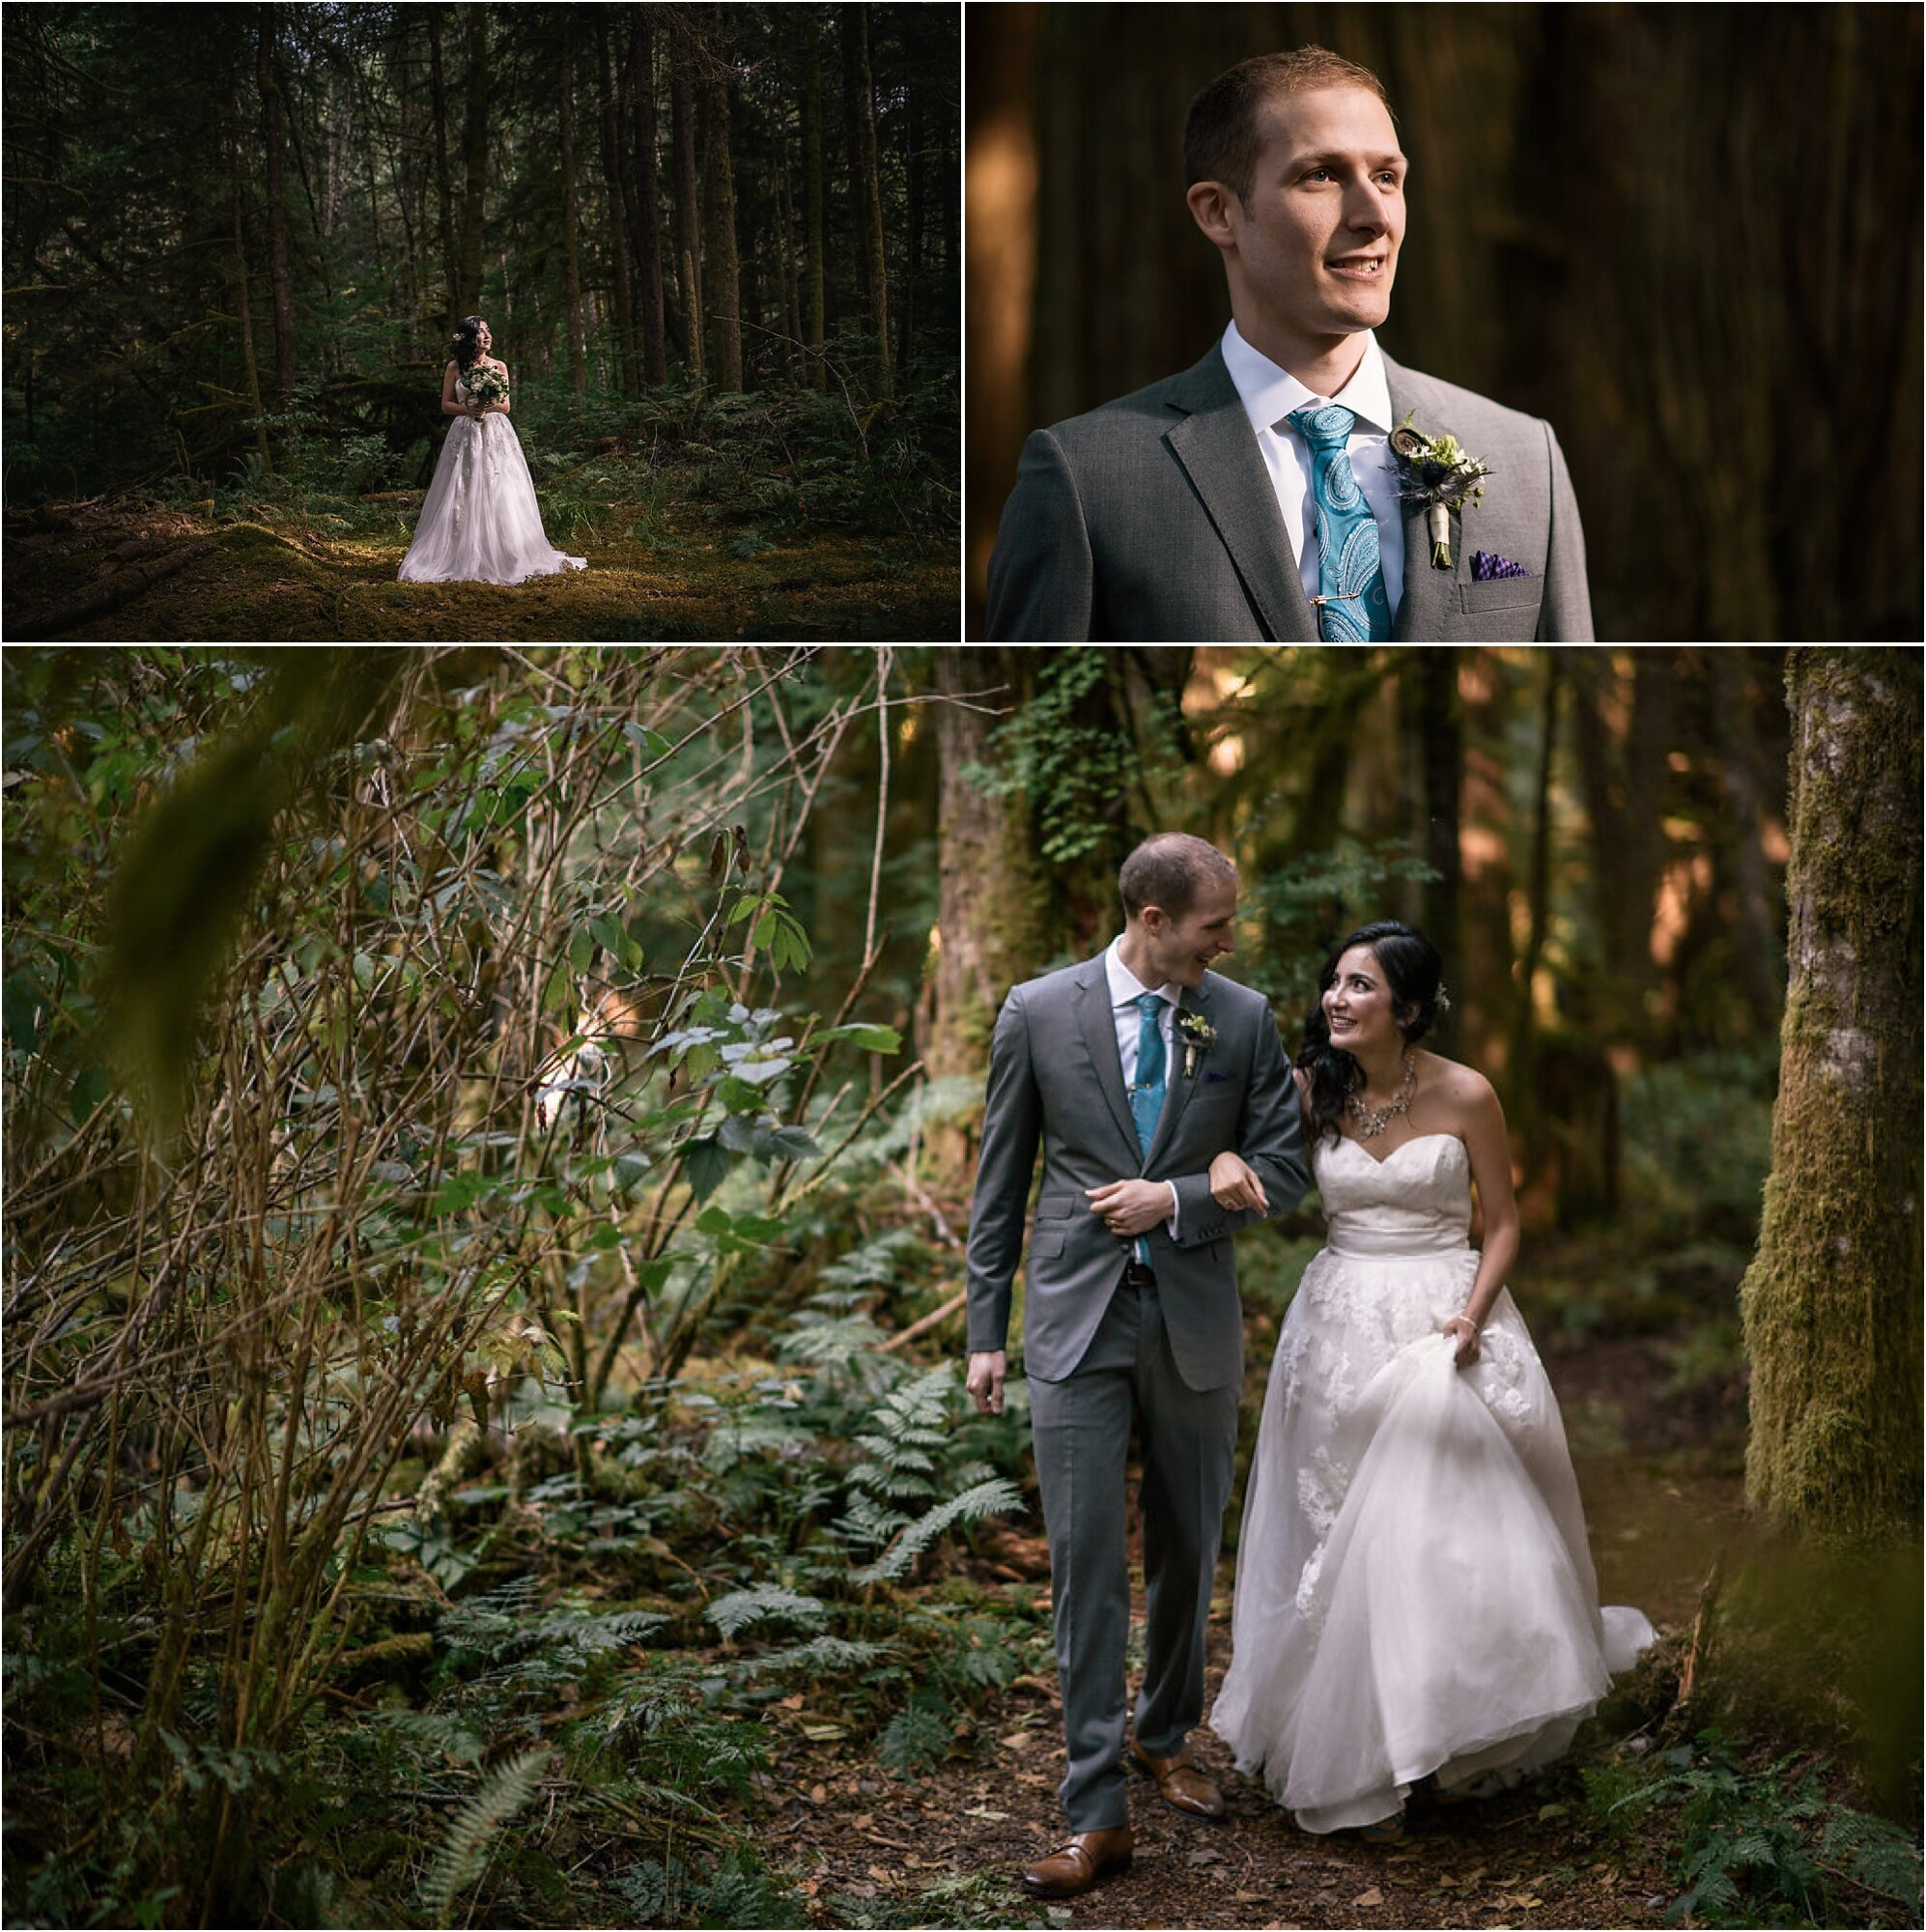 Alex and Nodira getting ready and walking together through mossy trees to ceremony at campsite in Washington state